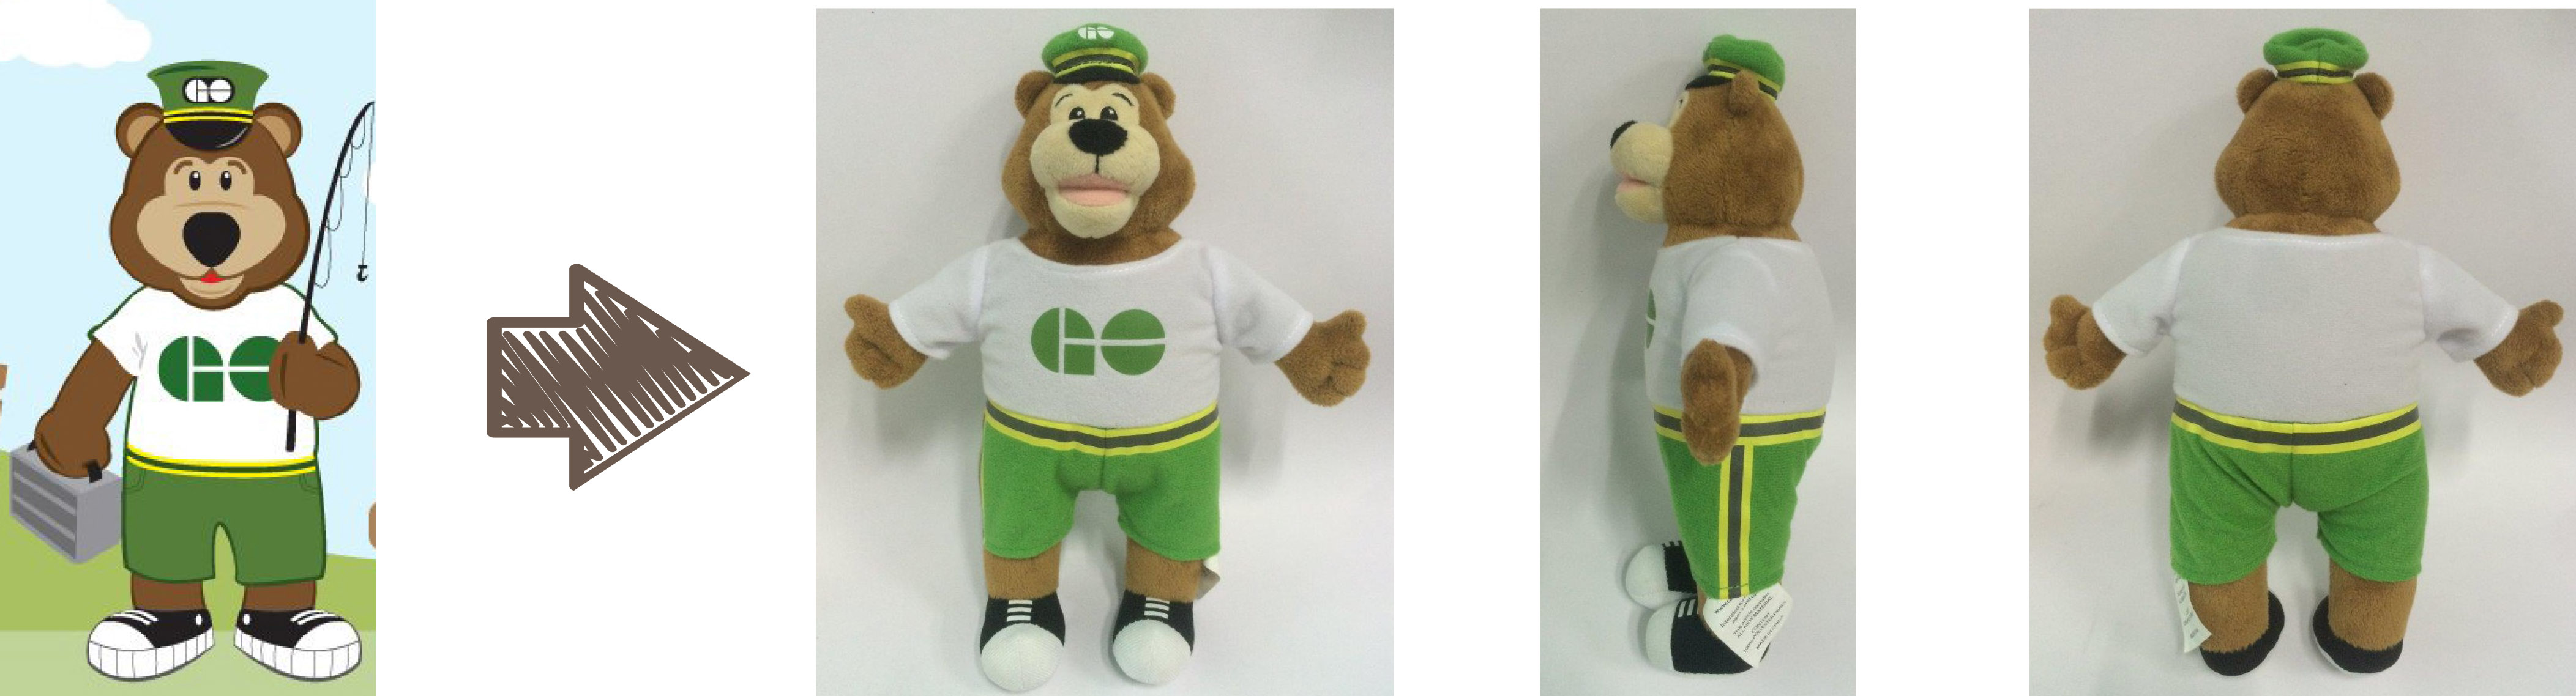 Go Transit mascot stuffed animal